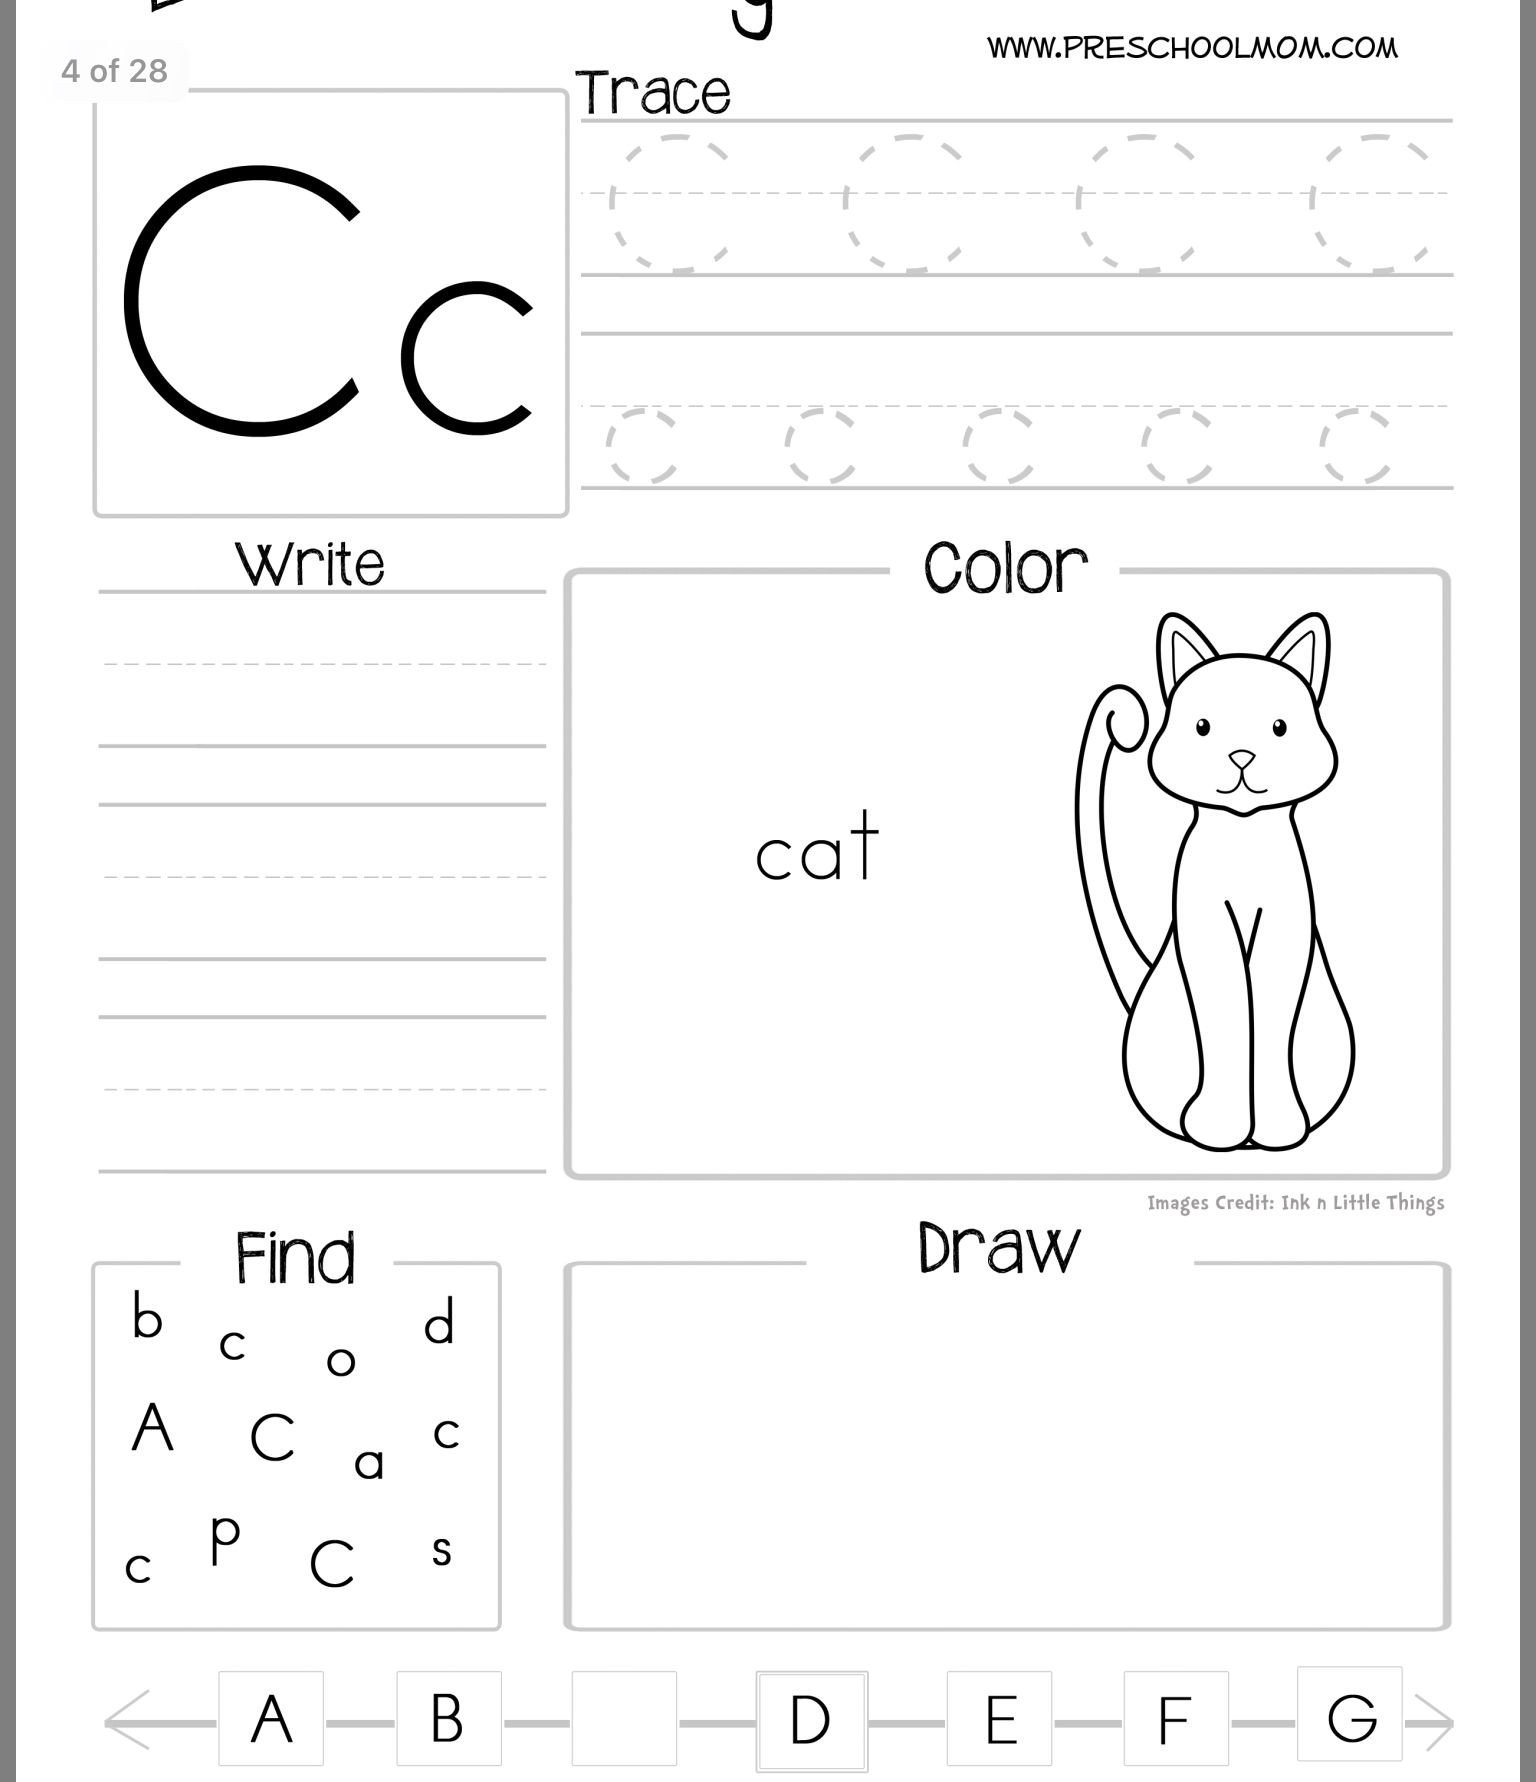 Mammals Worksheet First Grade Worksheets Classroom Mathematics Grade Caps 5th Cbse Maths